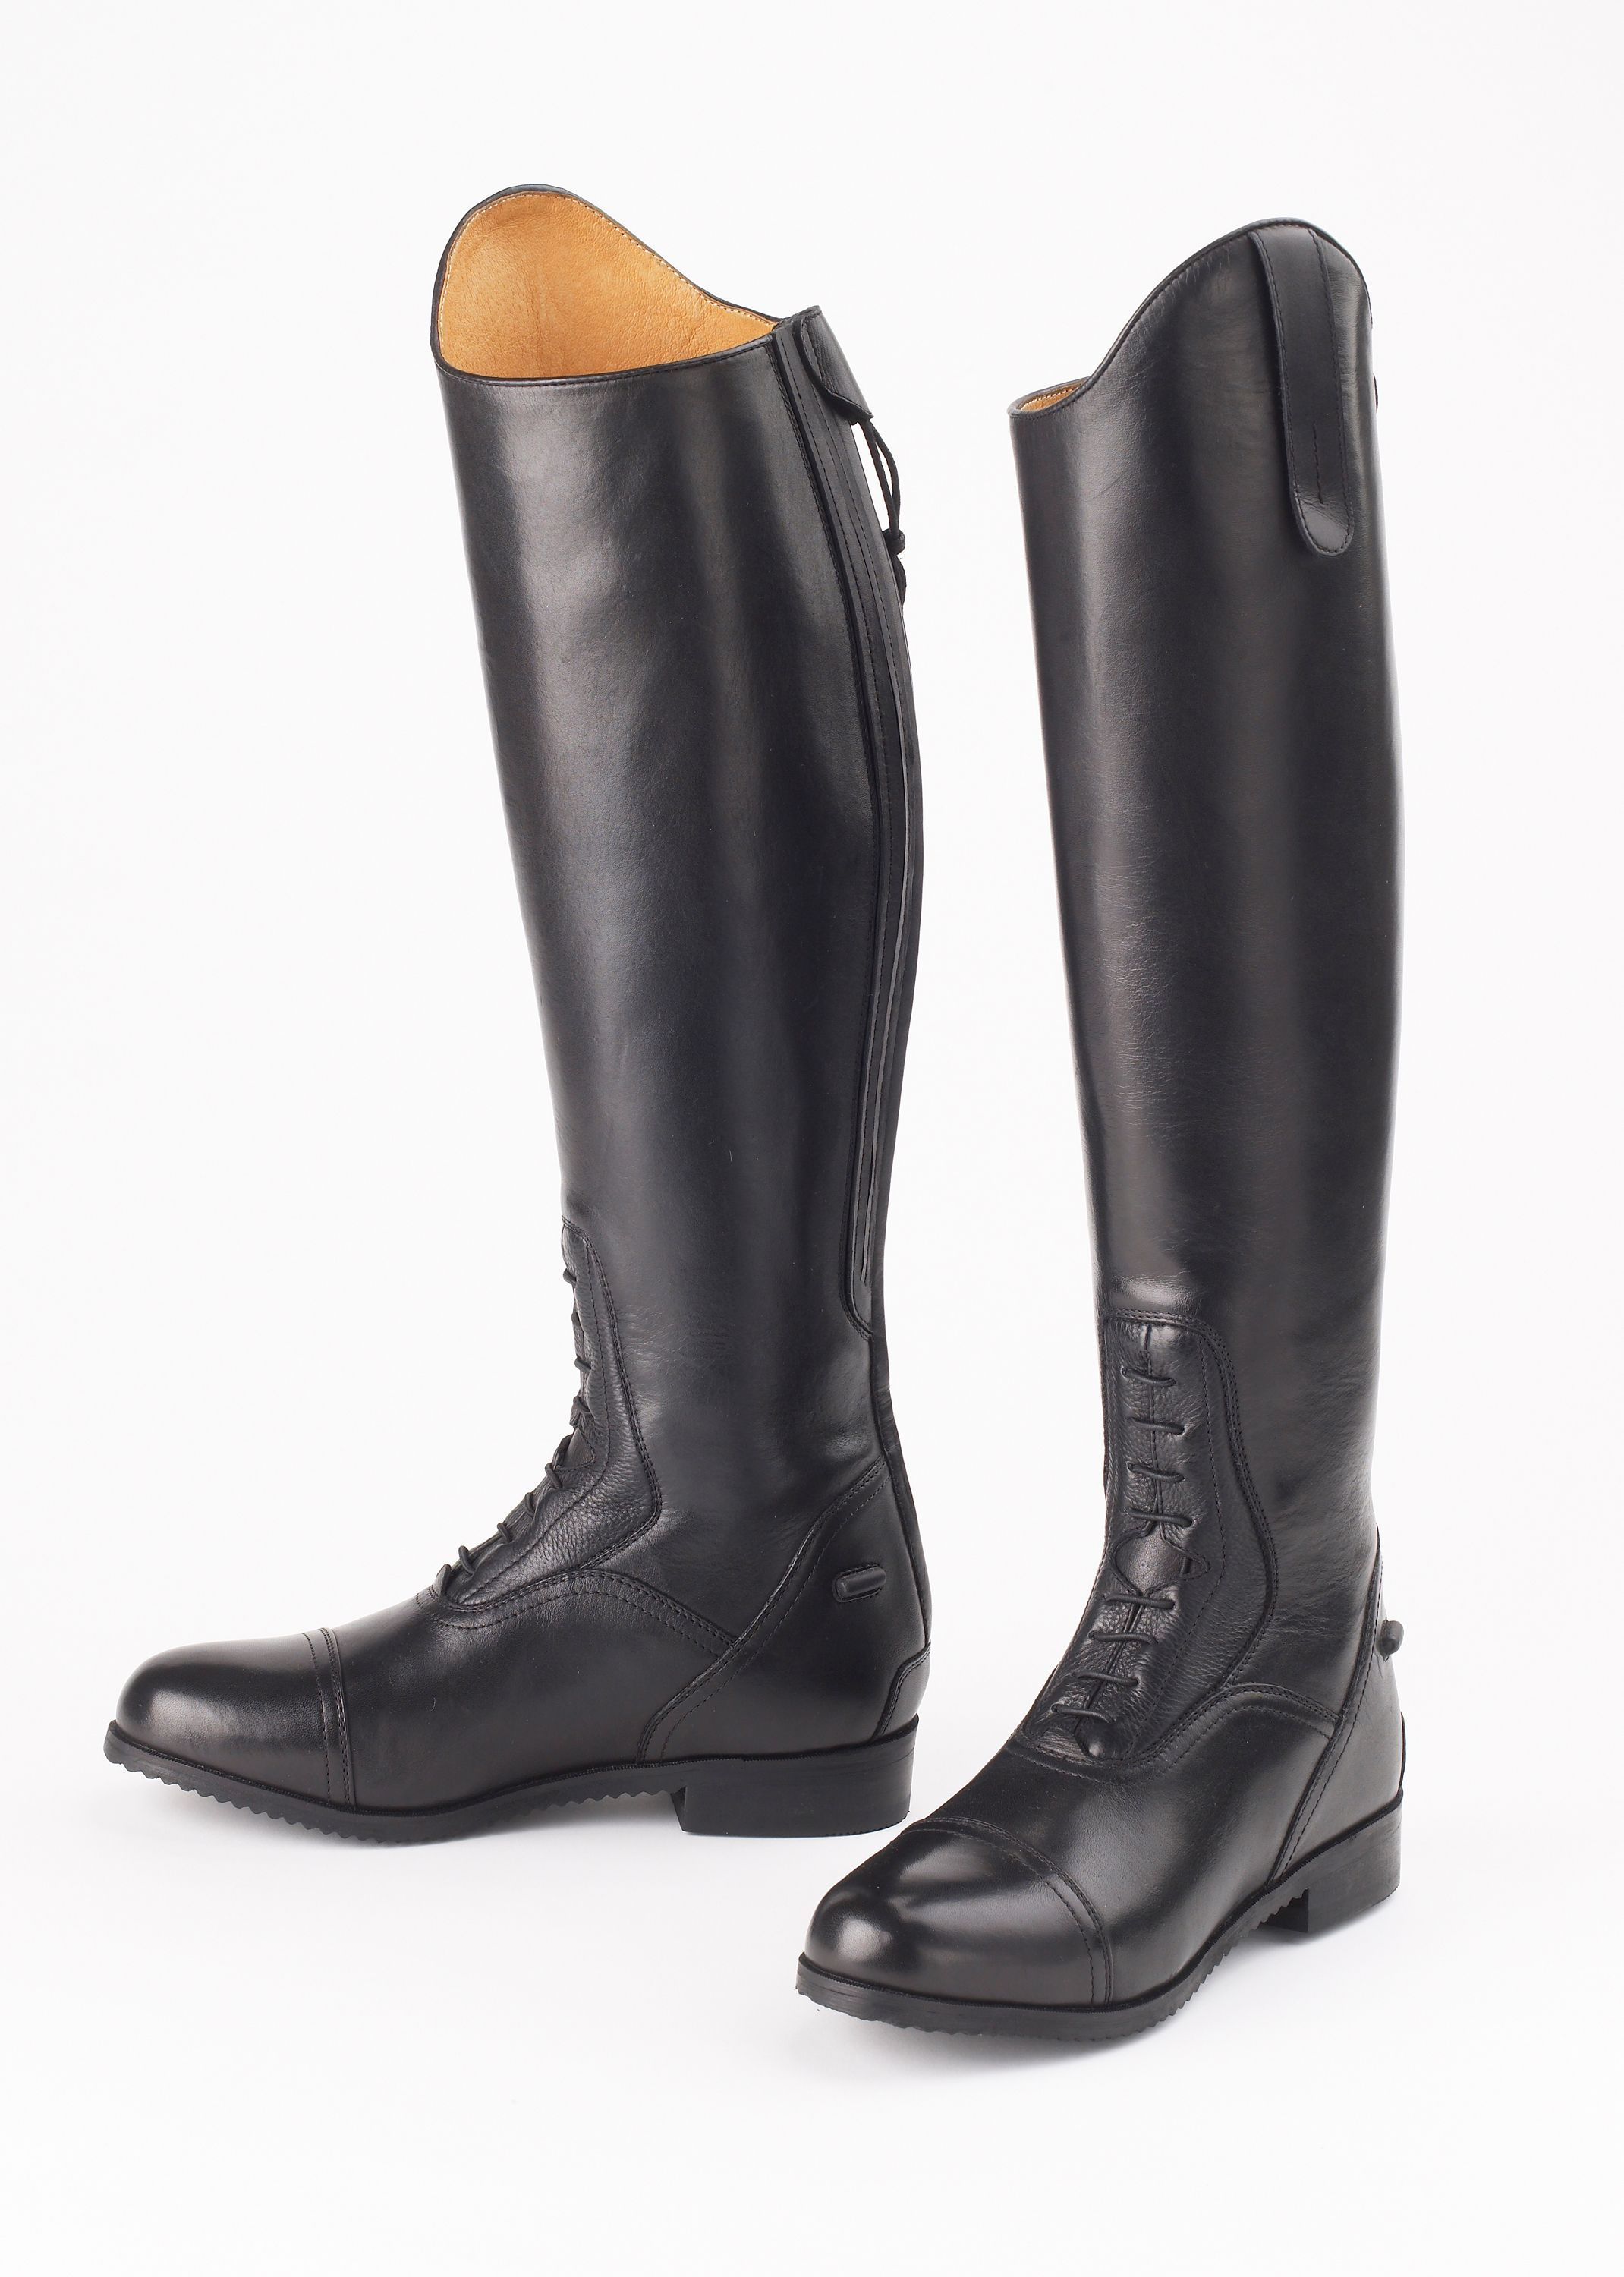 Ovation Ladies Flex Field Boots